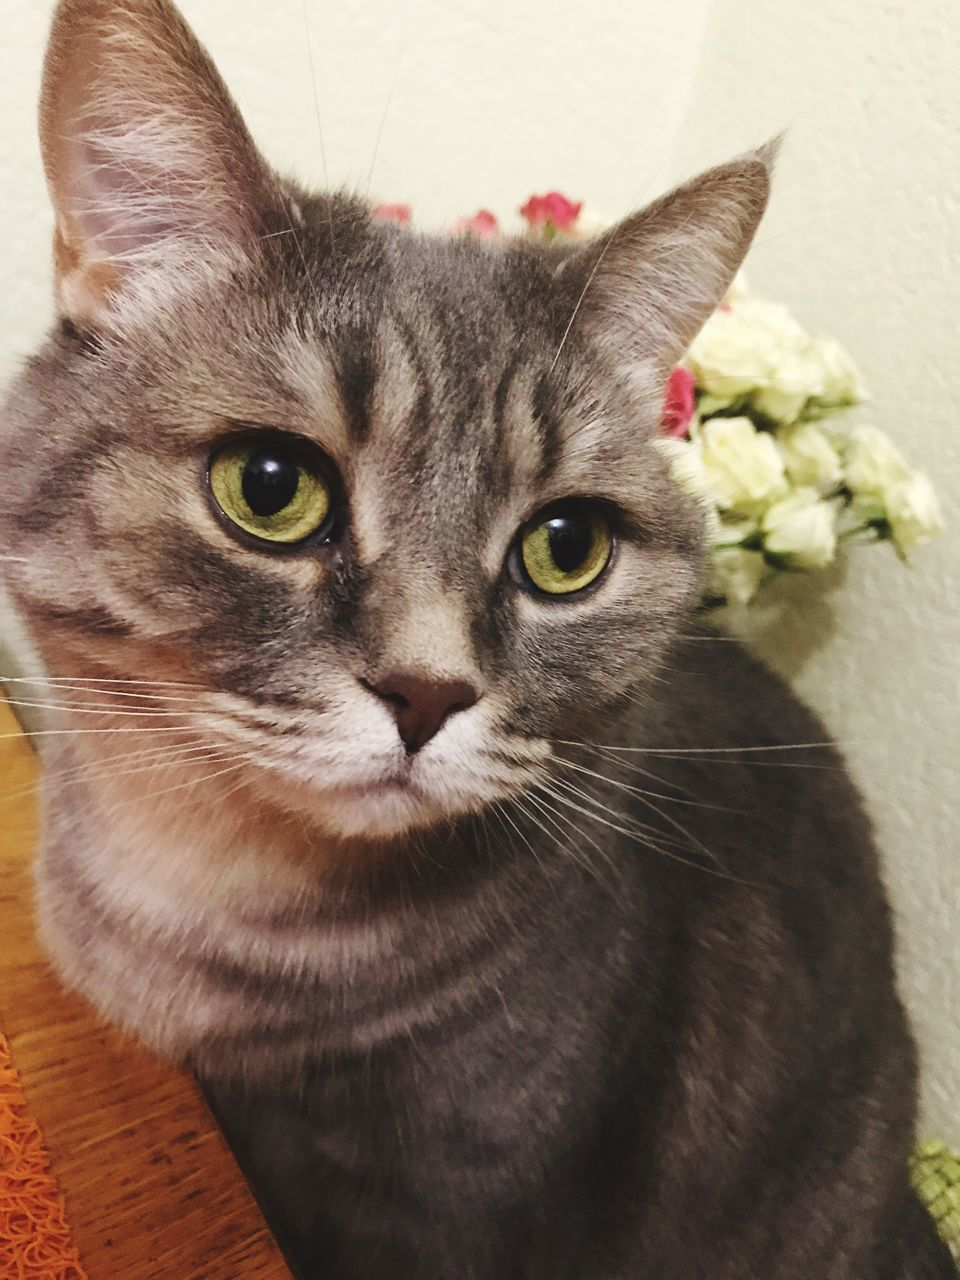 domestic cat, pets, domestic animals, feline, mammal, animal themes, whisker, one animal, cat, looking at camera, portrait, indoors, no people, close-up, flower, home interior, day